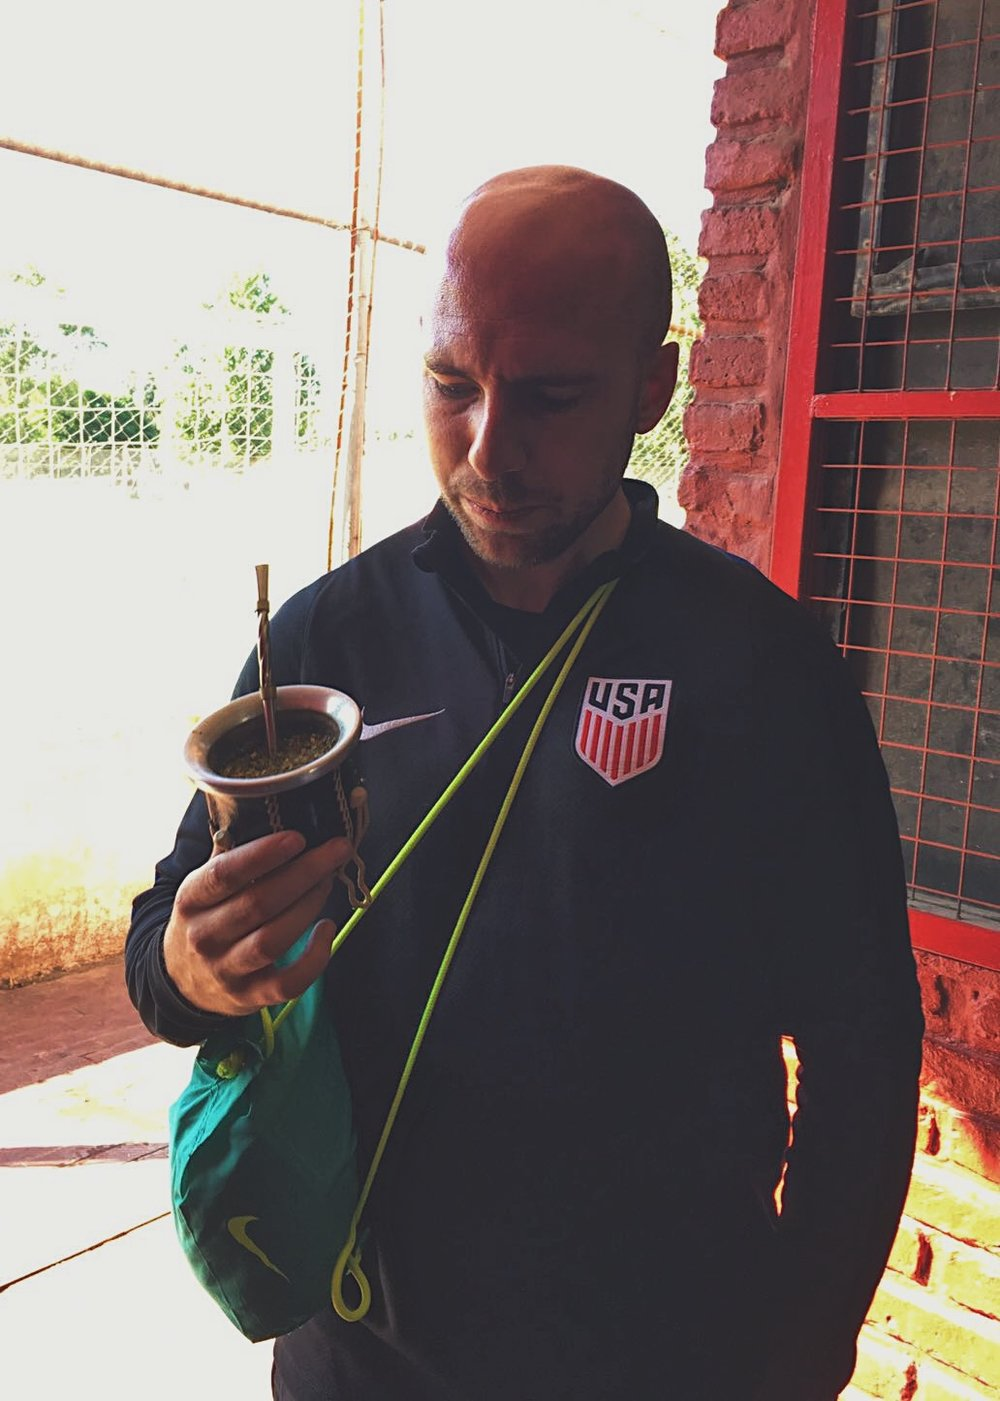 Buenos Aires, Argentina - Can't go to Argentina without trying the Mate. It would be unwise. Kevin doing as the locals do here.